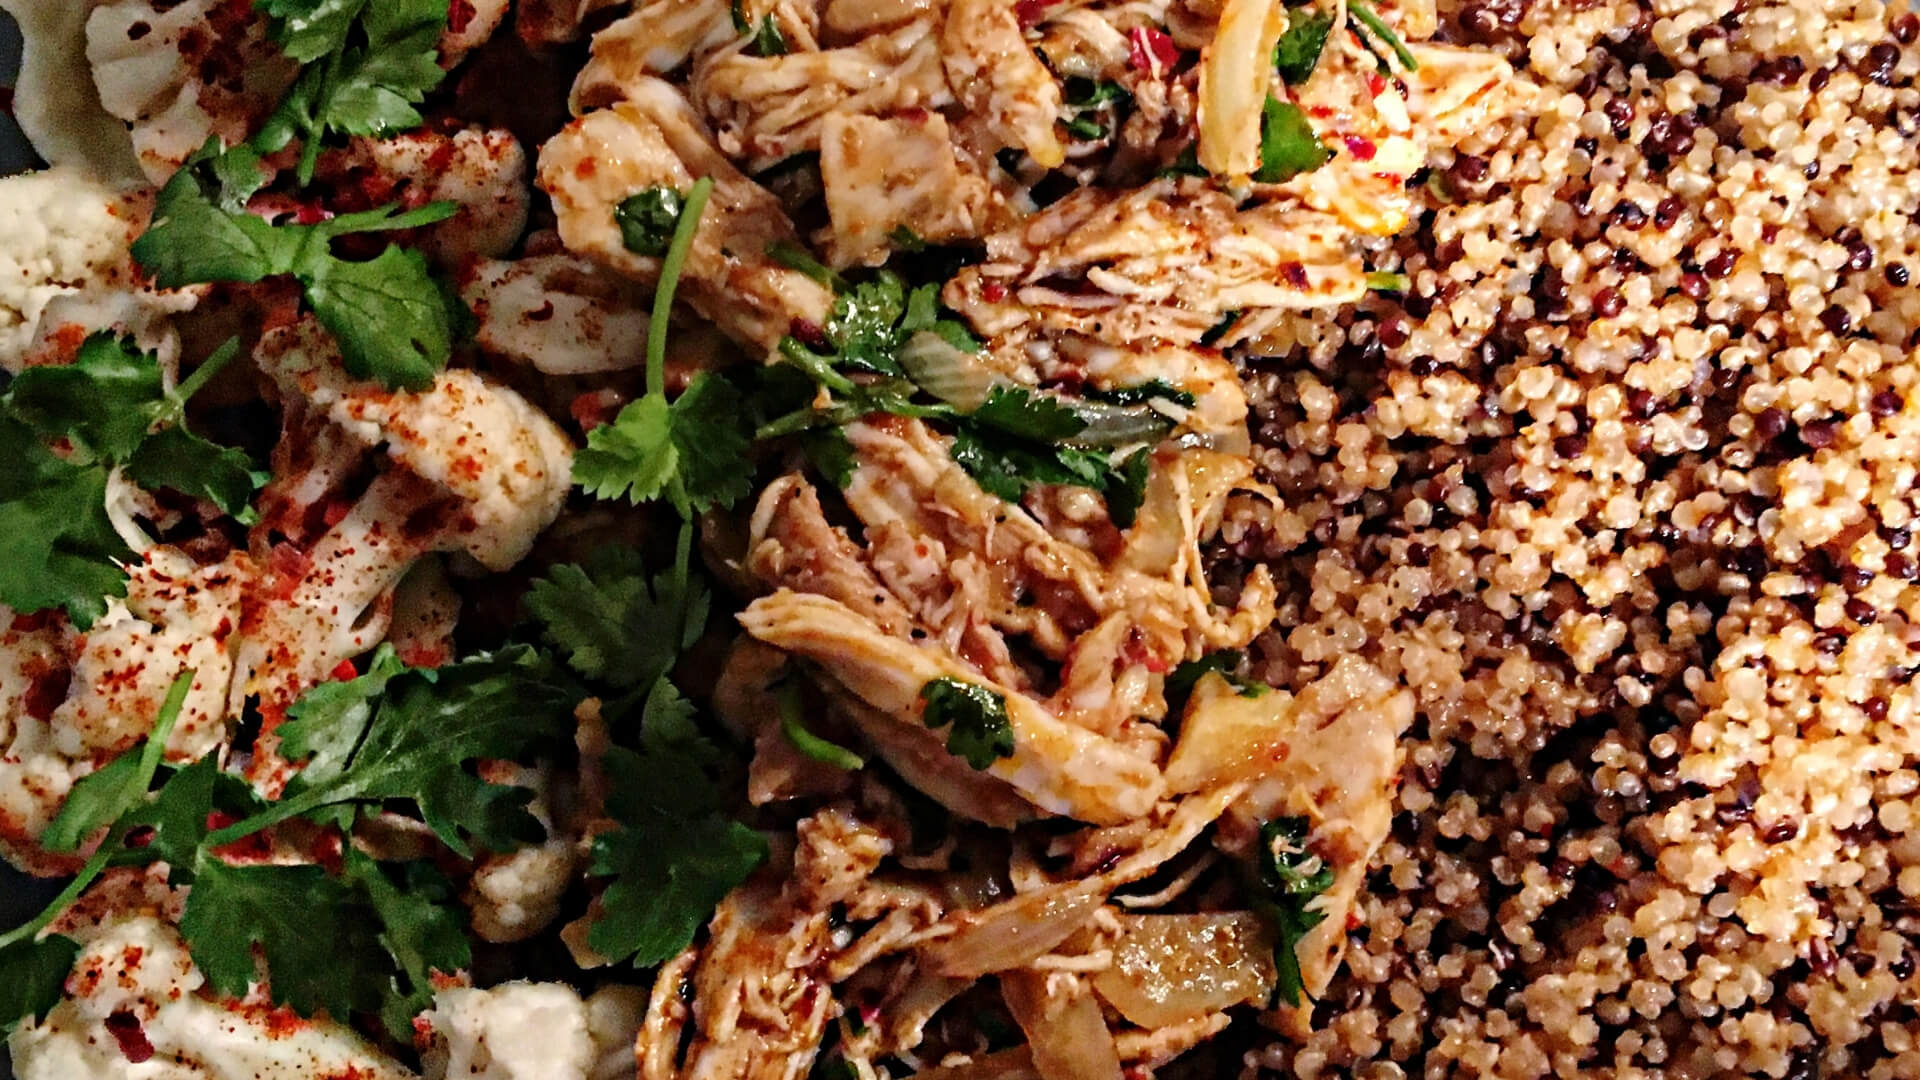 Pulled Chimichurri chicken & spiced quinoa